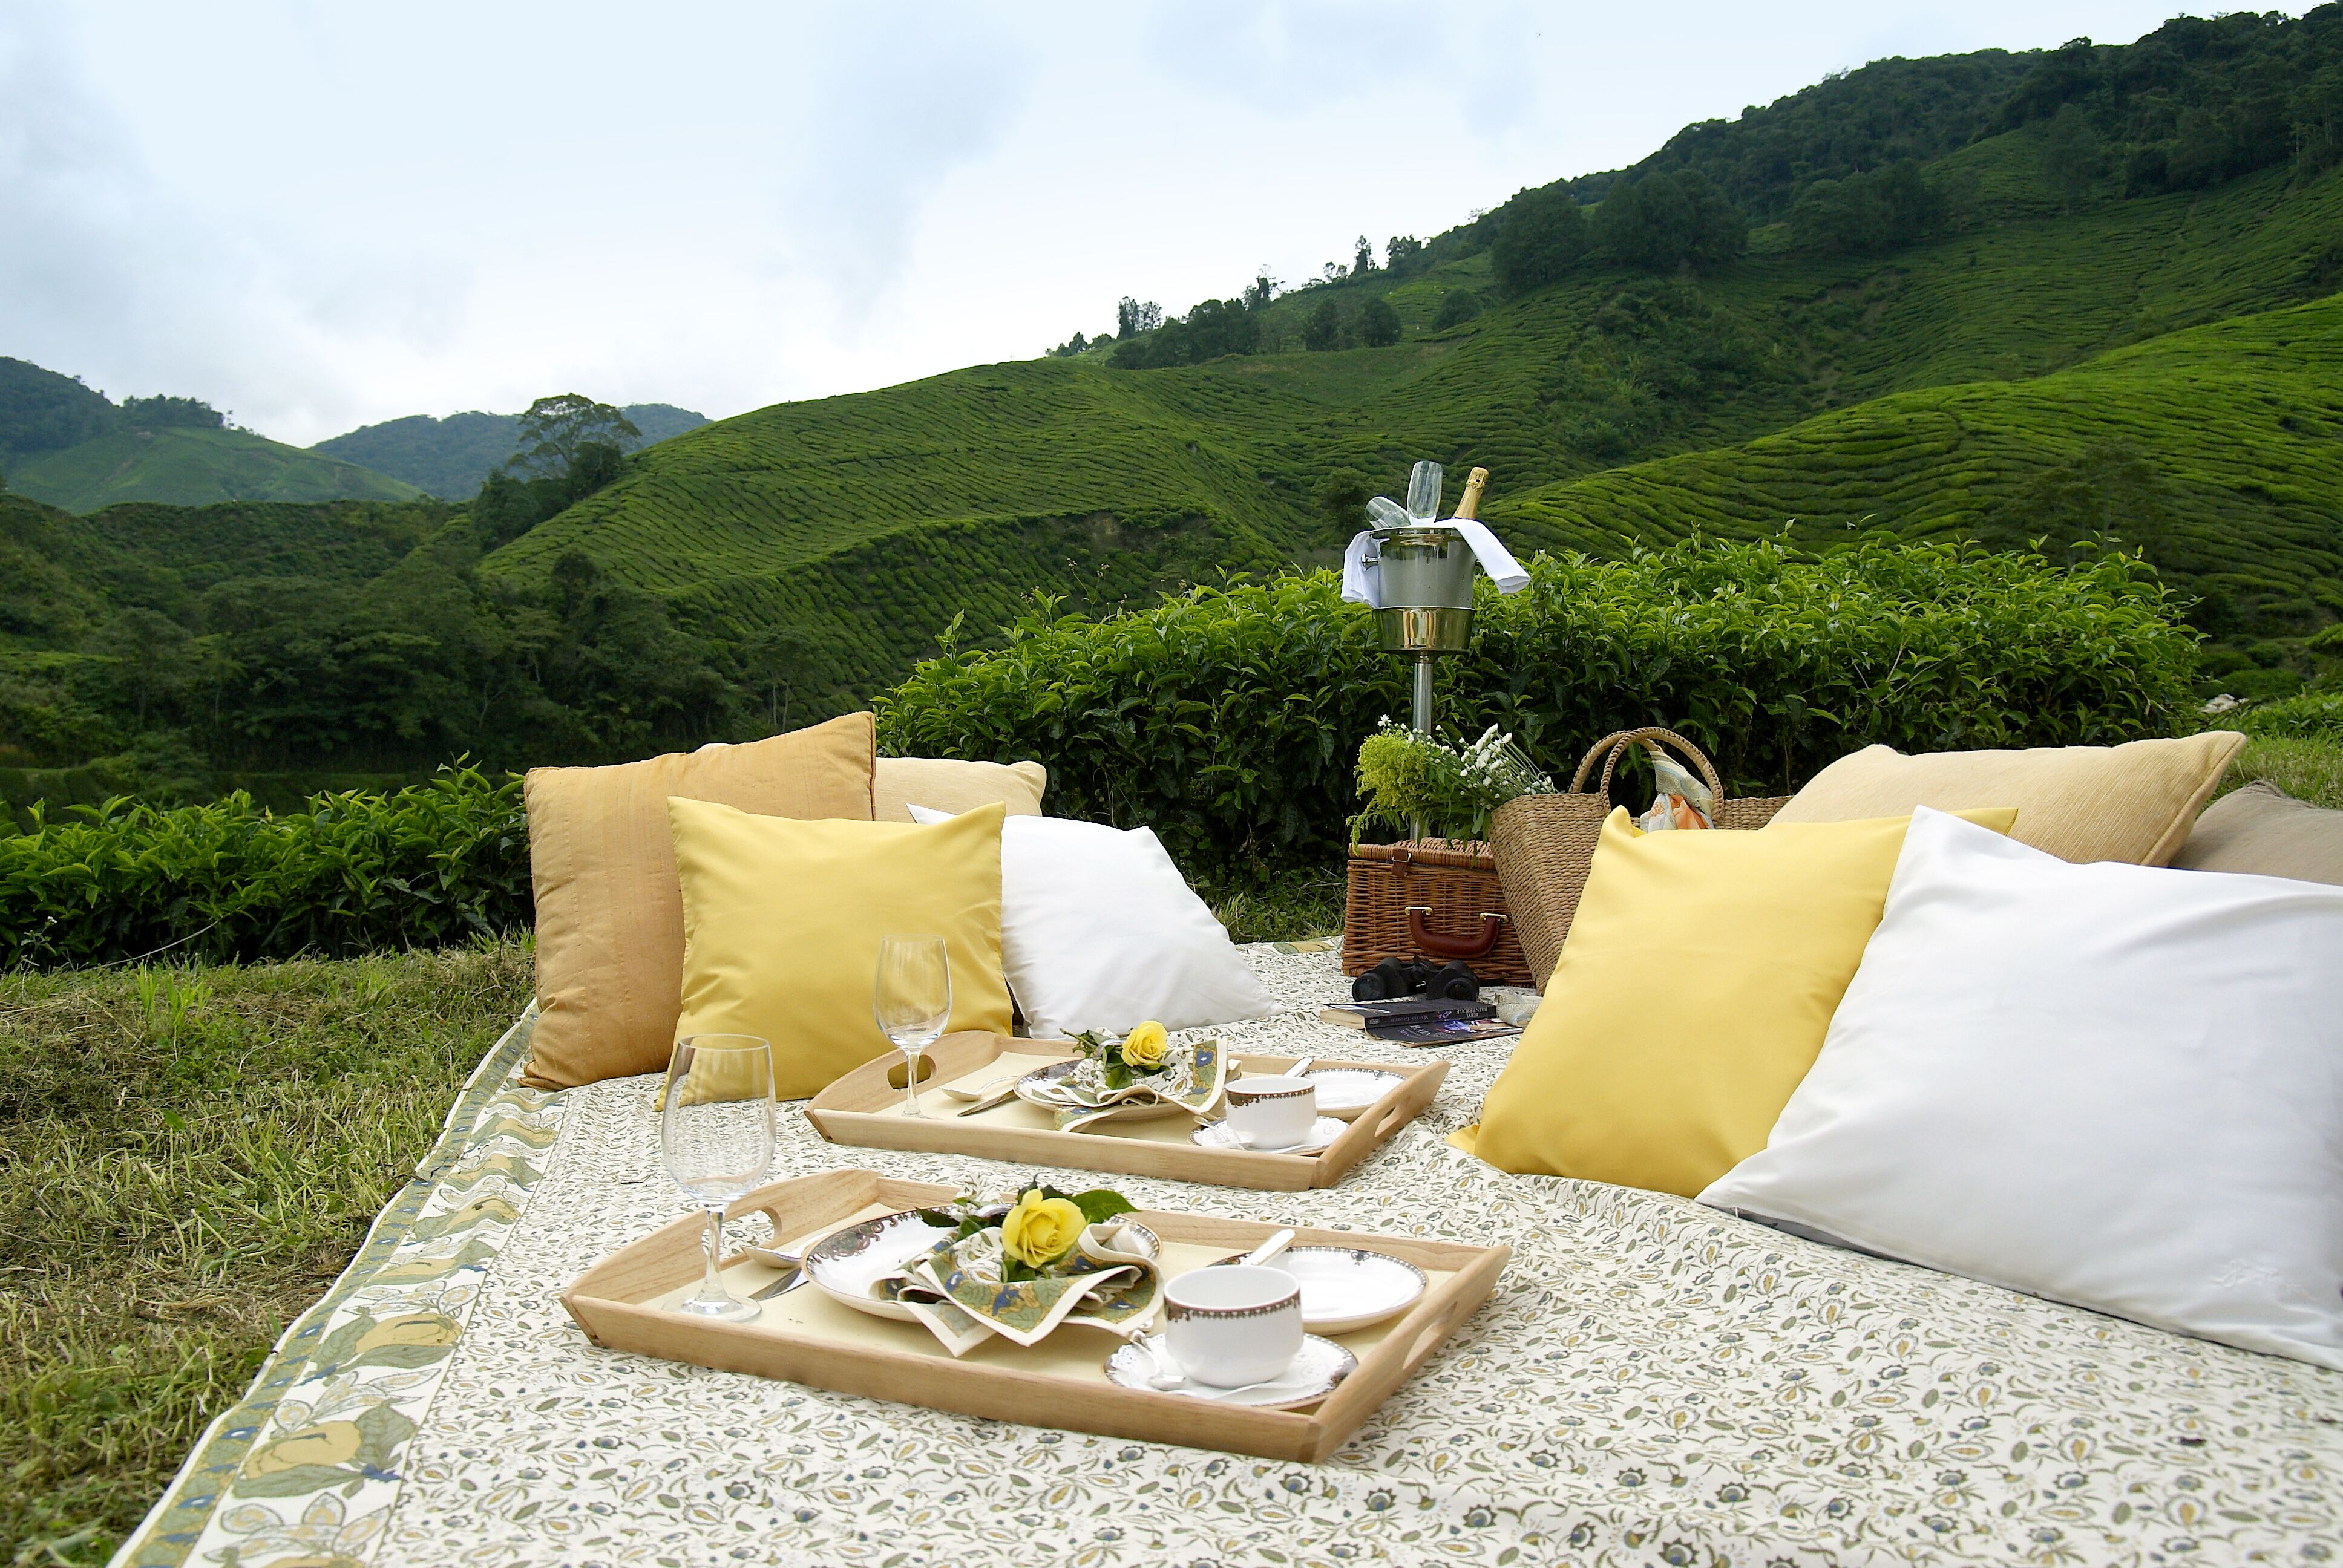 Take advantage of the signature picnic experience at Cameron Highlands Resort in Cameron Highlands, Malaysia. http://www.slh.com/hotels/cameron-highlands-resort/